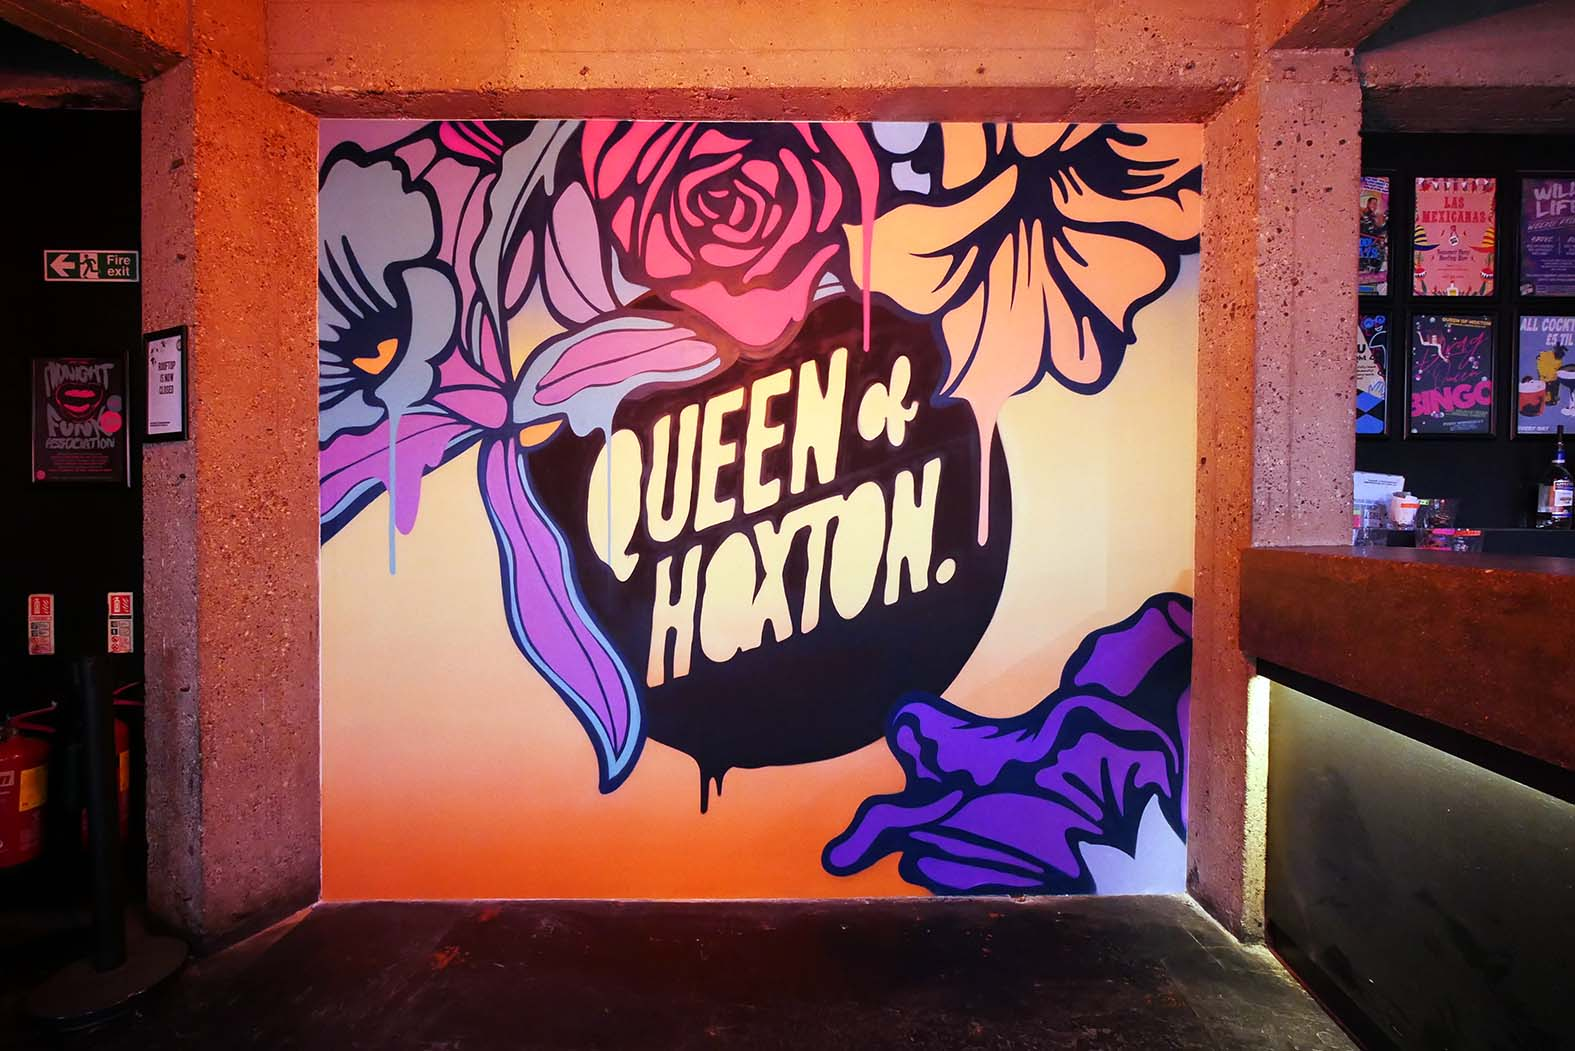 Nerone-queen-of-hoxton-painting-11